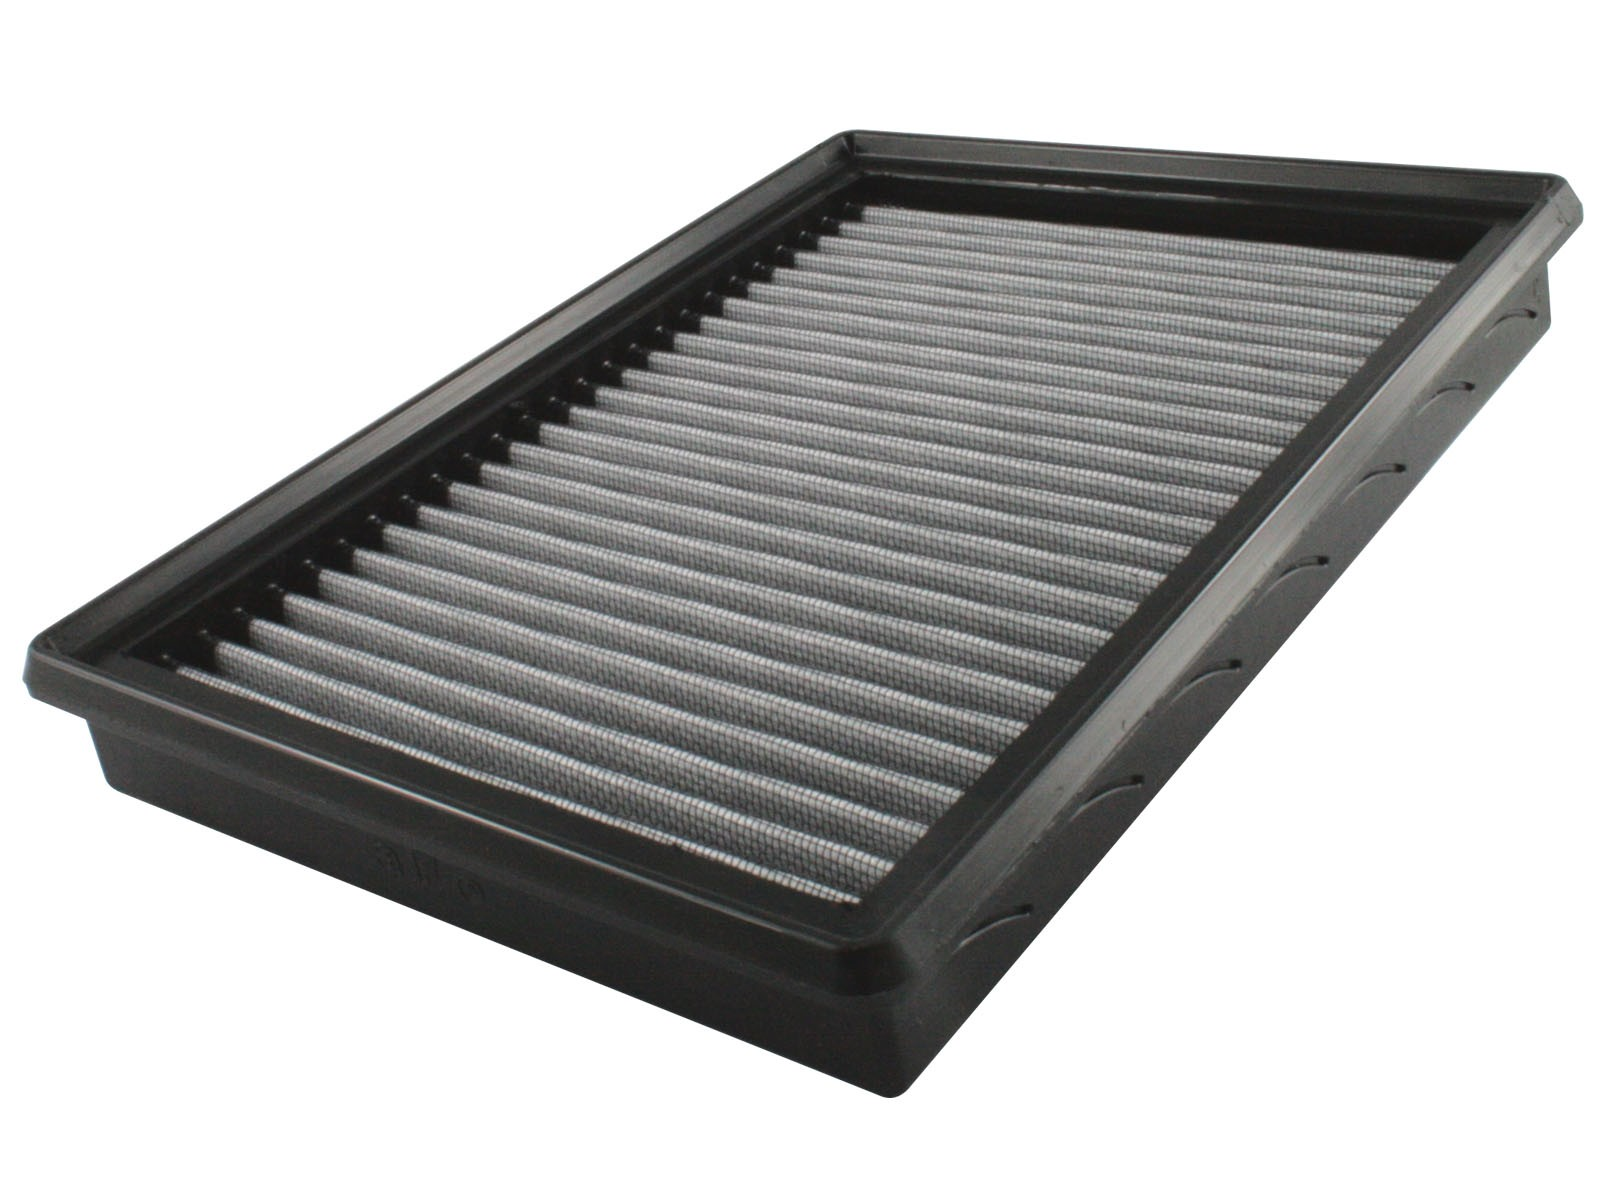 aFe POWER 31-10120 Magnum FLOW Pro DRY S Air Filter